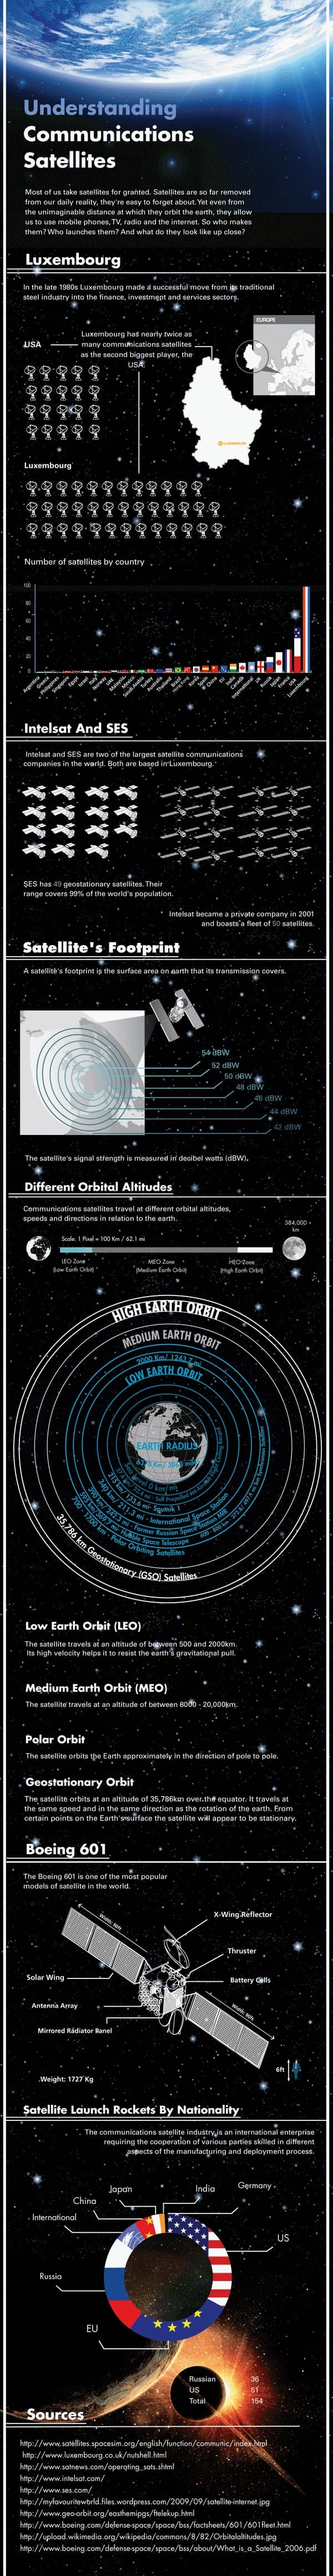 Incredible World of Communication Satellites Infographic